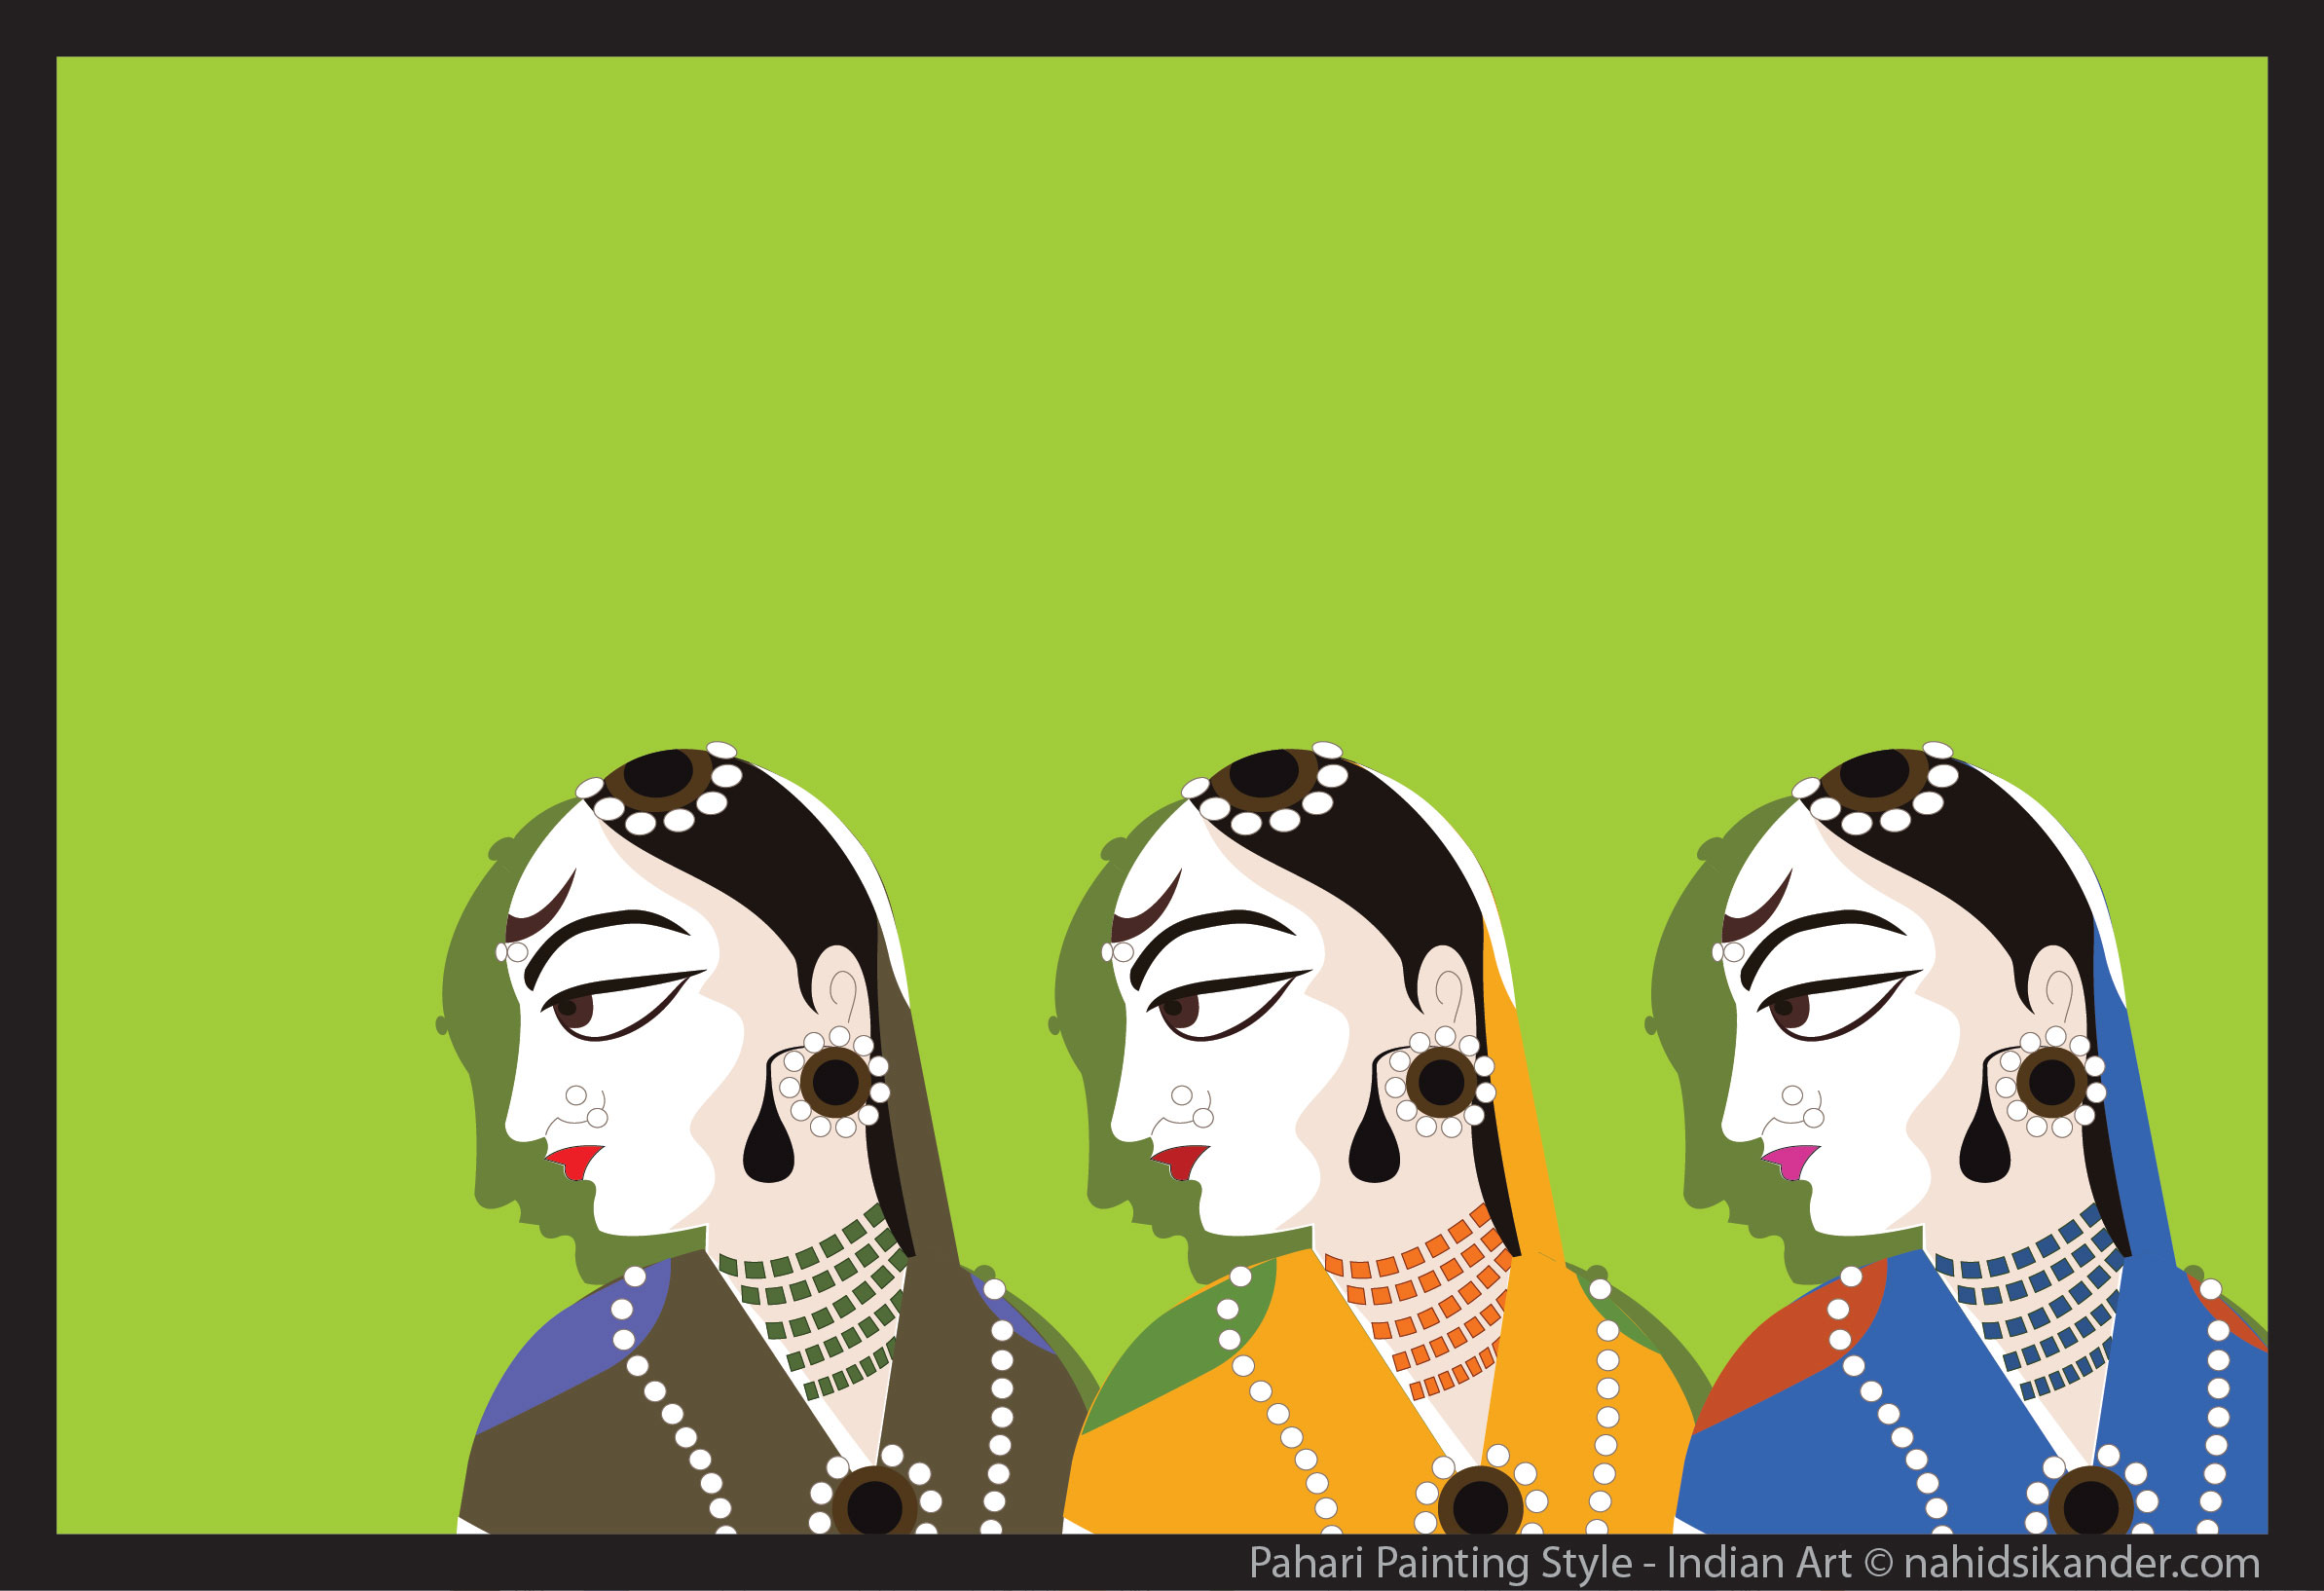 three women, Indian art - pahari painting style